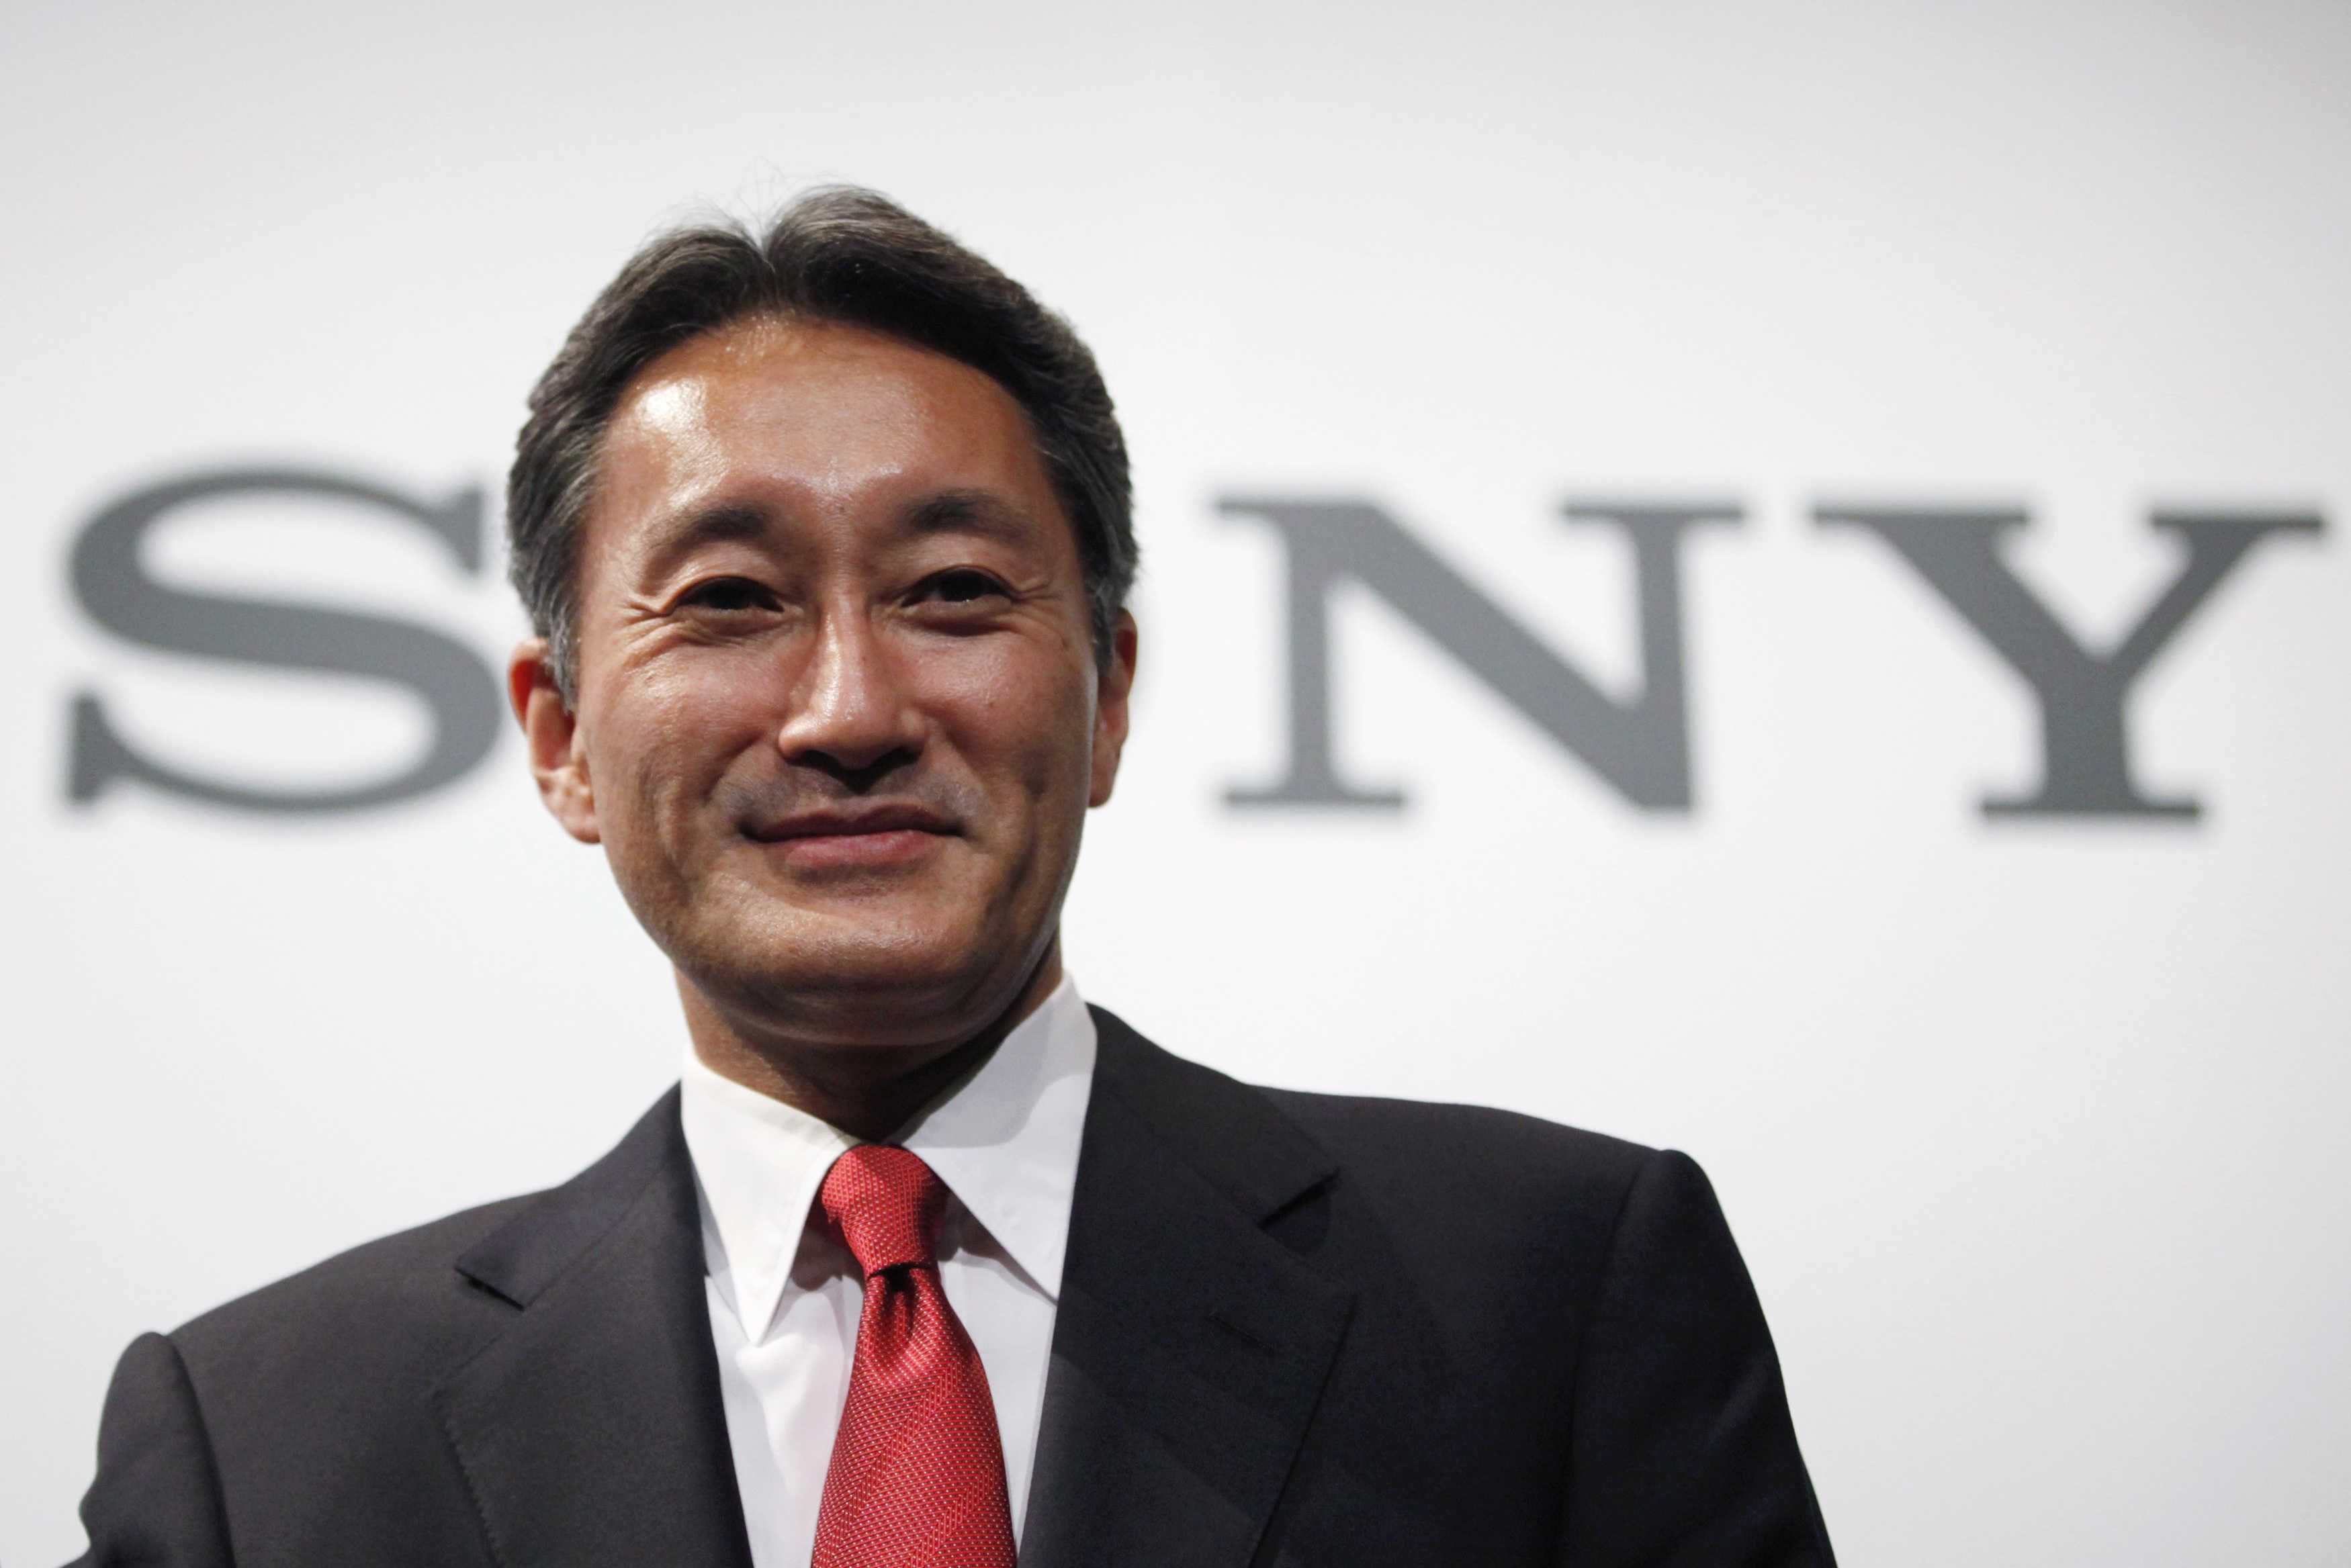 Sony Corp's Chief Executive Officer Hirai attends a news conference at the company's headquarters in Tokyo